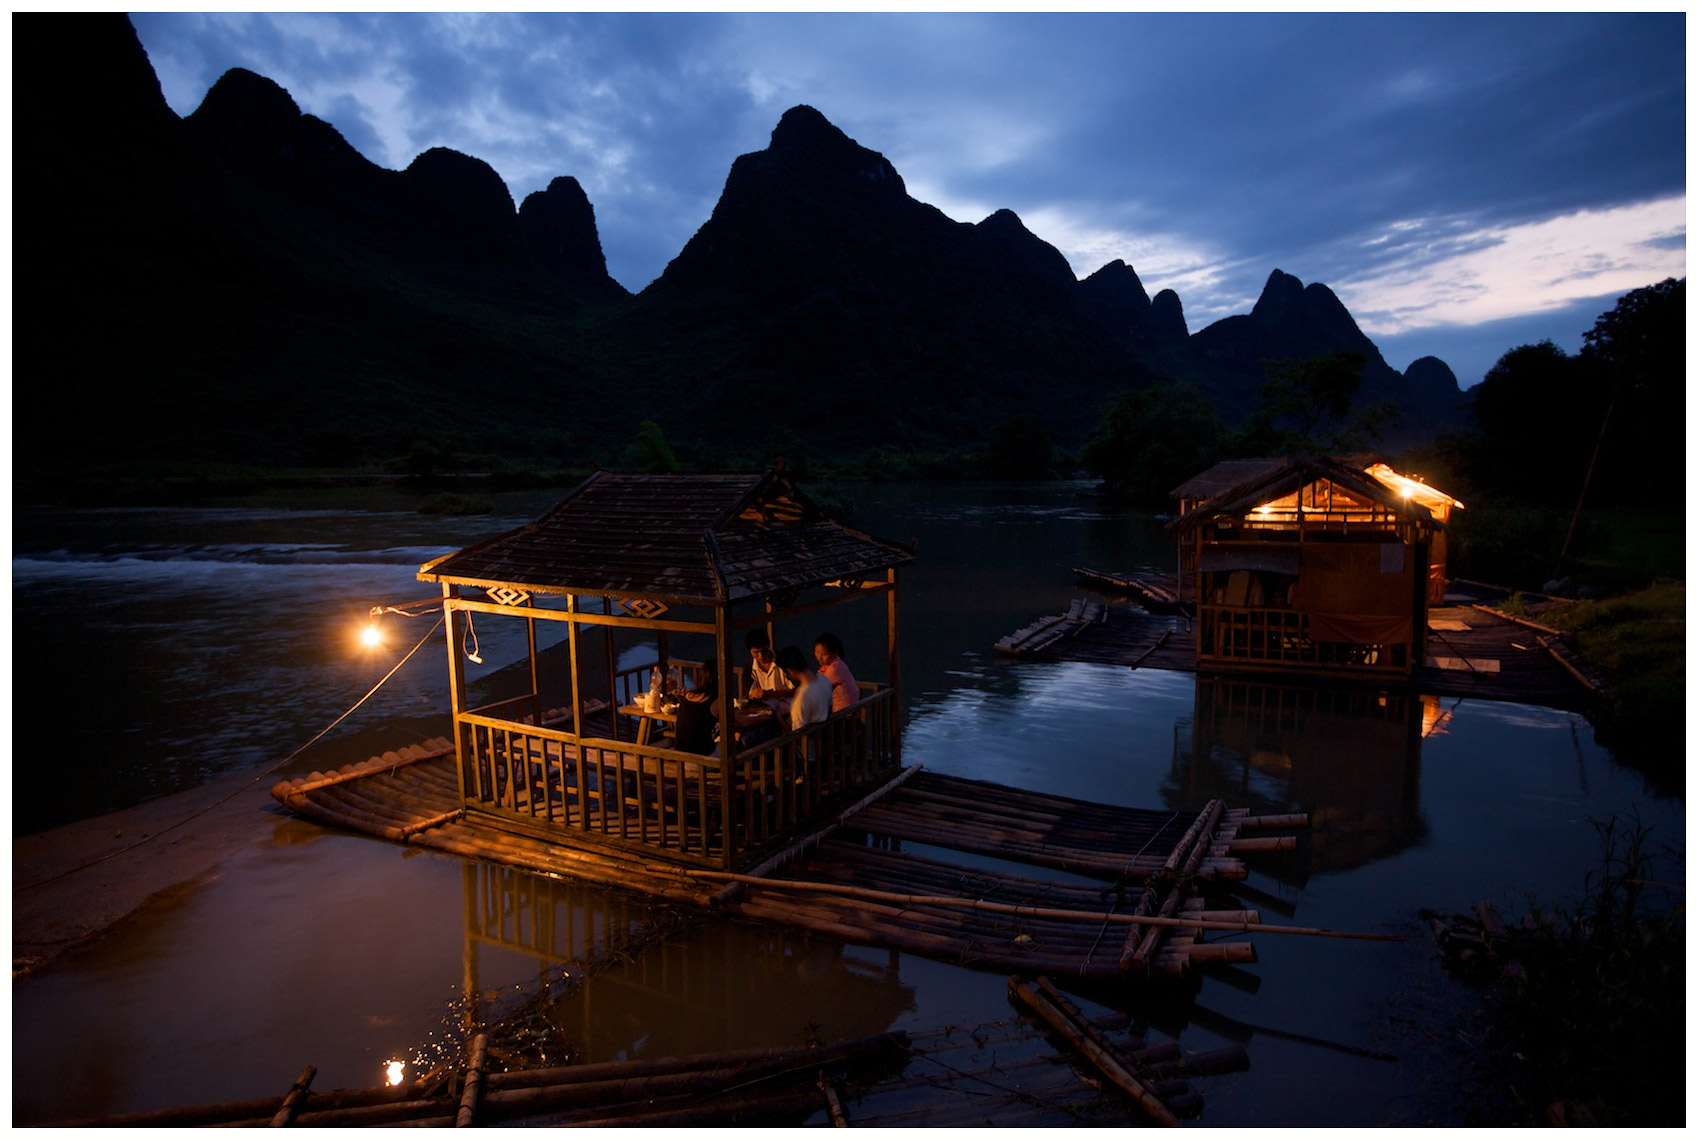 Floating restaurant tables on a subsidiary of the Li River